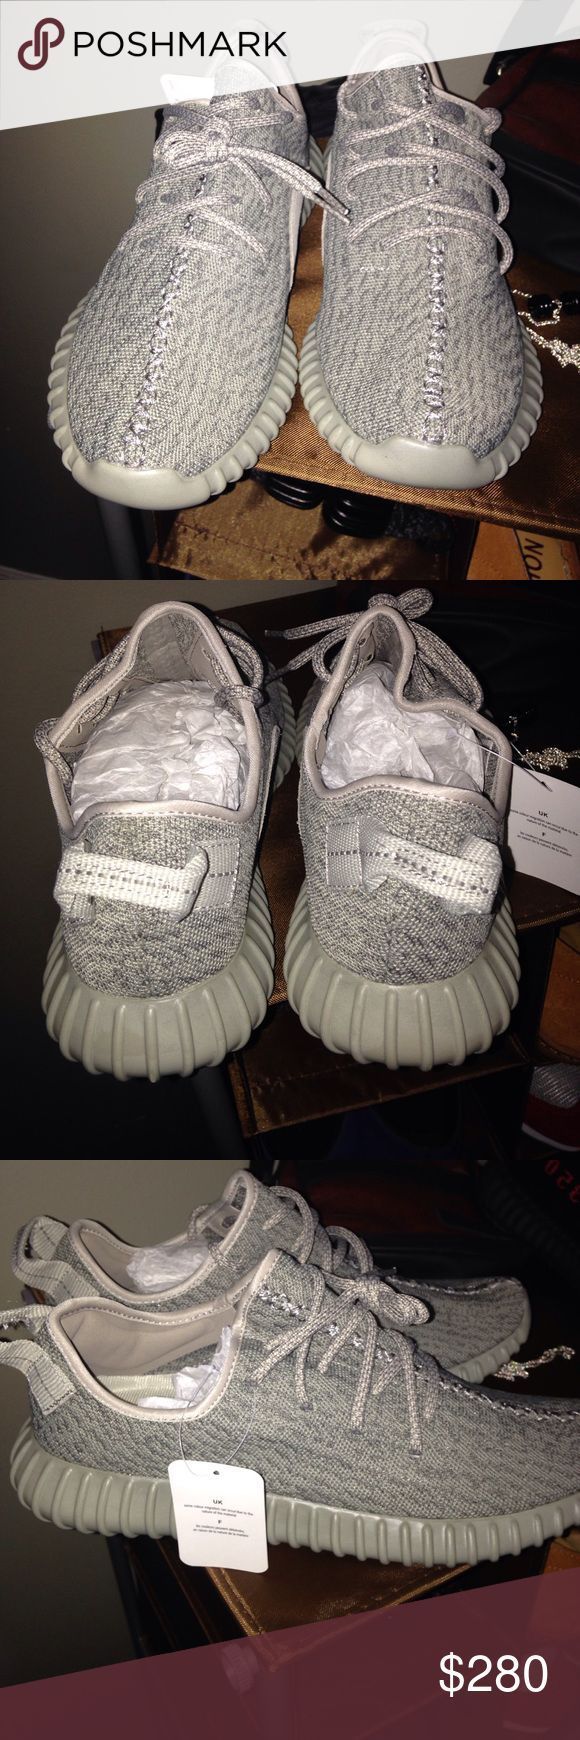 Yeezy Boost 350 Moonrock 9.5 I just wear it once and the BOX is little torn. You decide, you see is what you get! Bargain price. Adidas Shoes Athletic Shoes